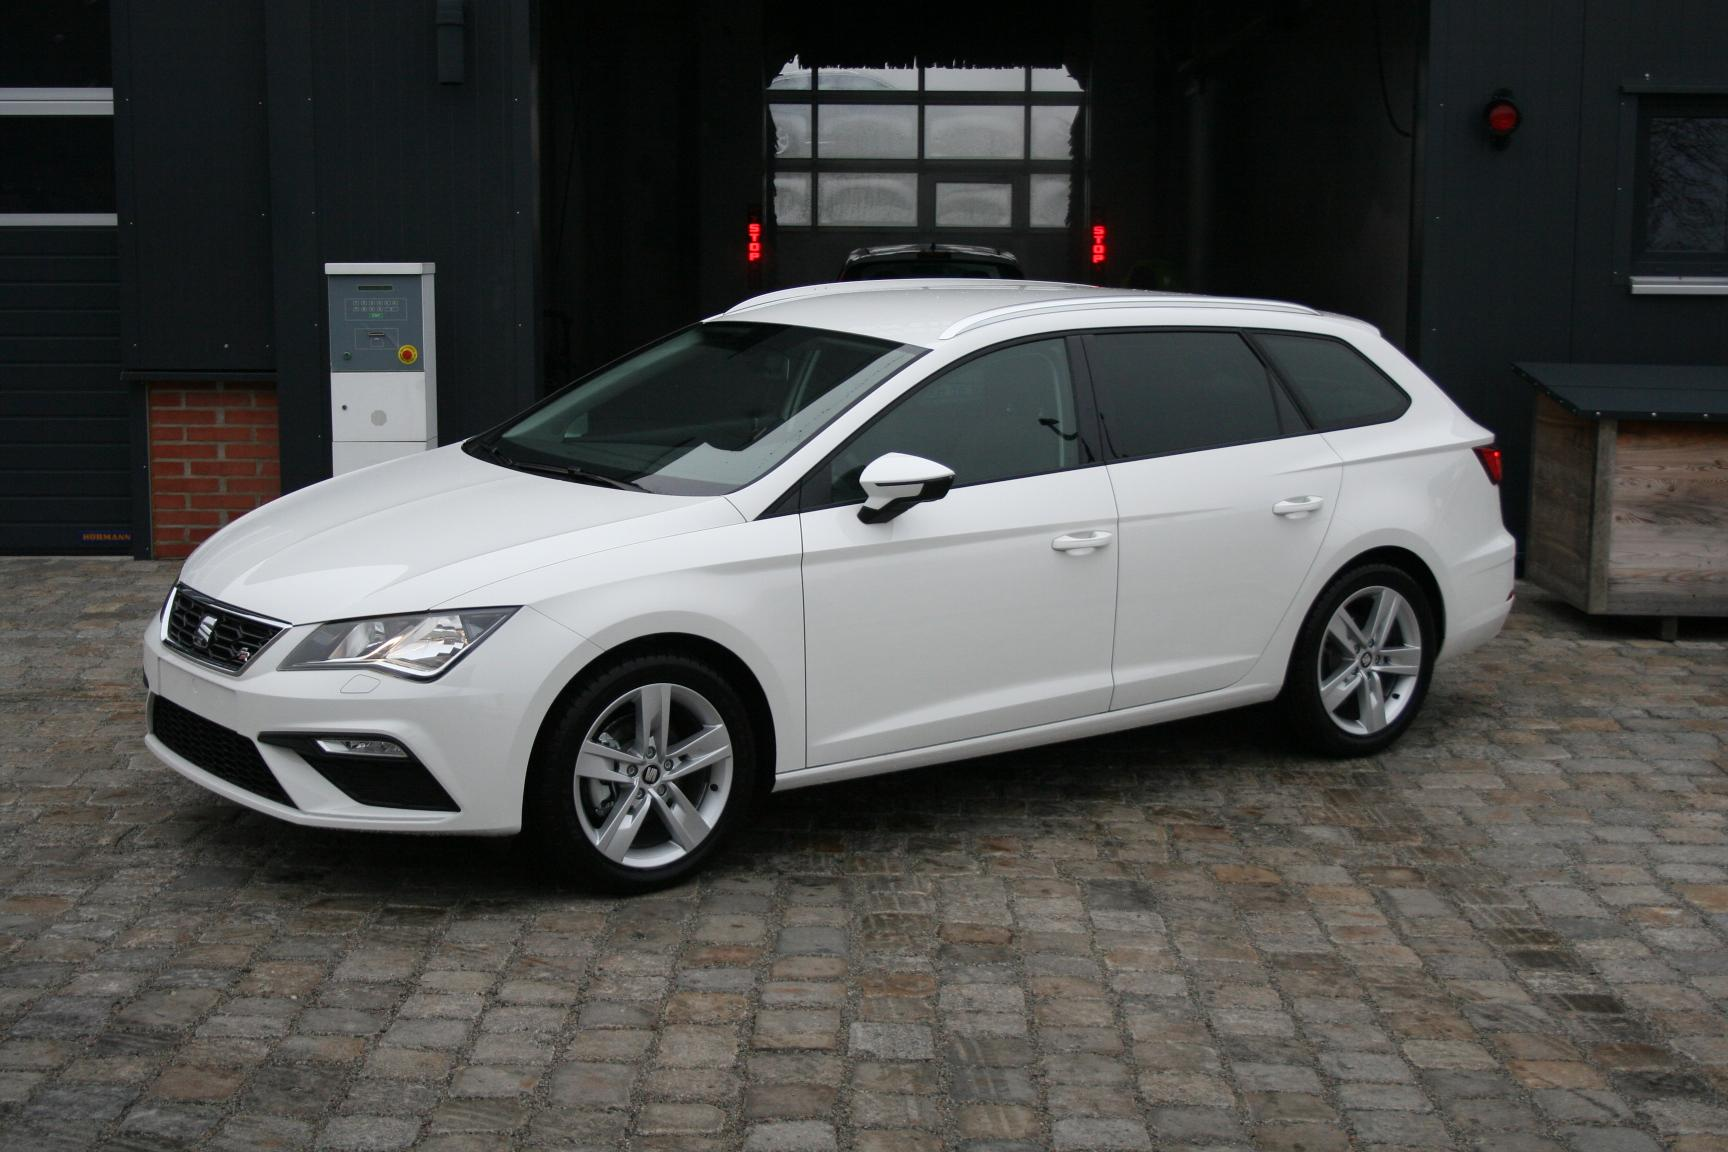 seat leon st facelift 1 4 tsi 125 ps fr climatronic mfl shzg top sofort benzin candy weiss. Black Bedroom Furniture Sets. Home Design Ideas